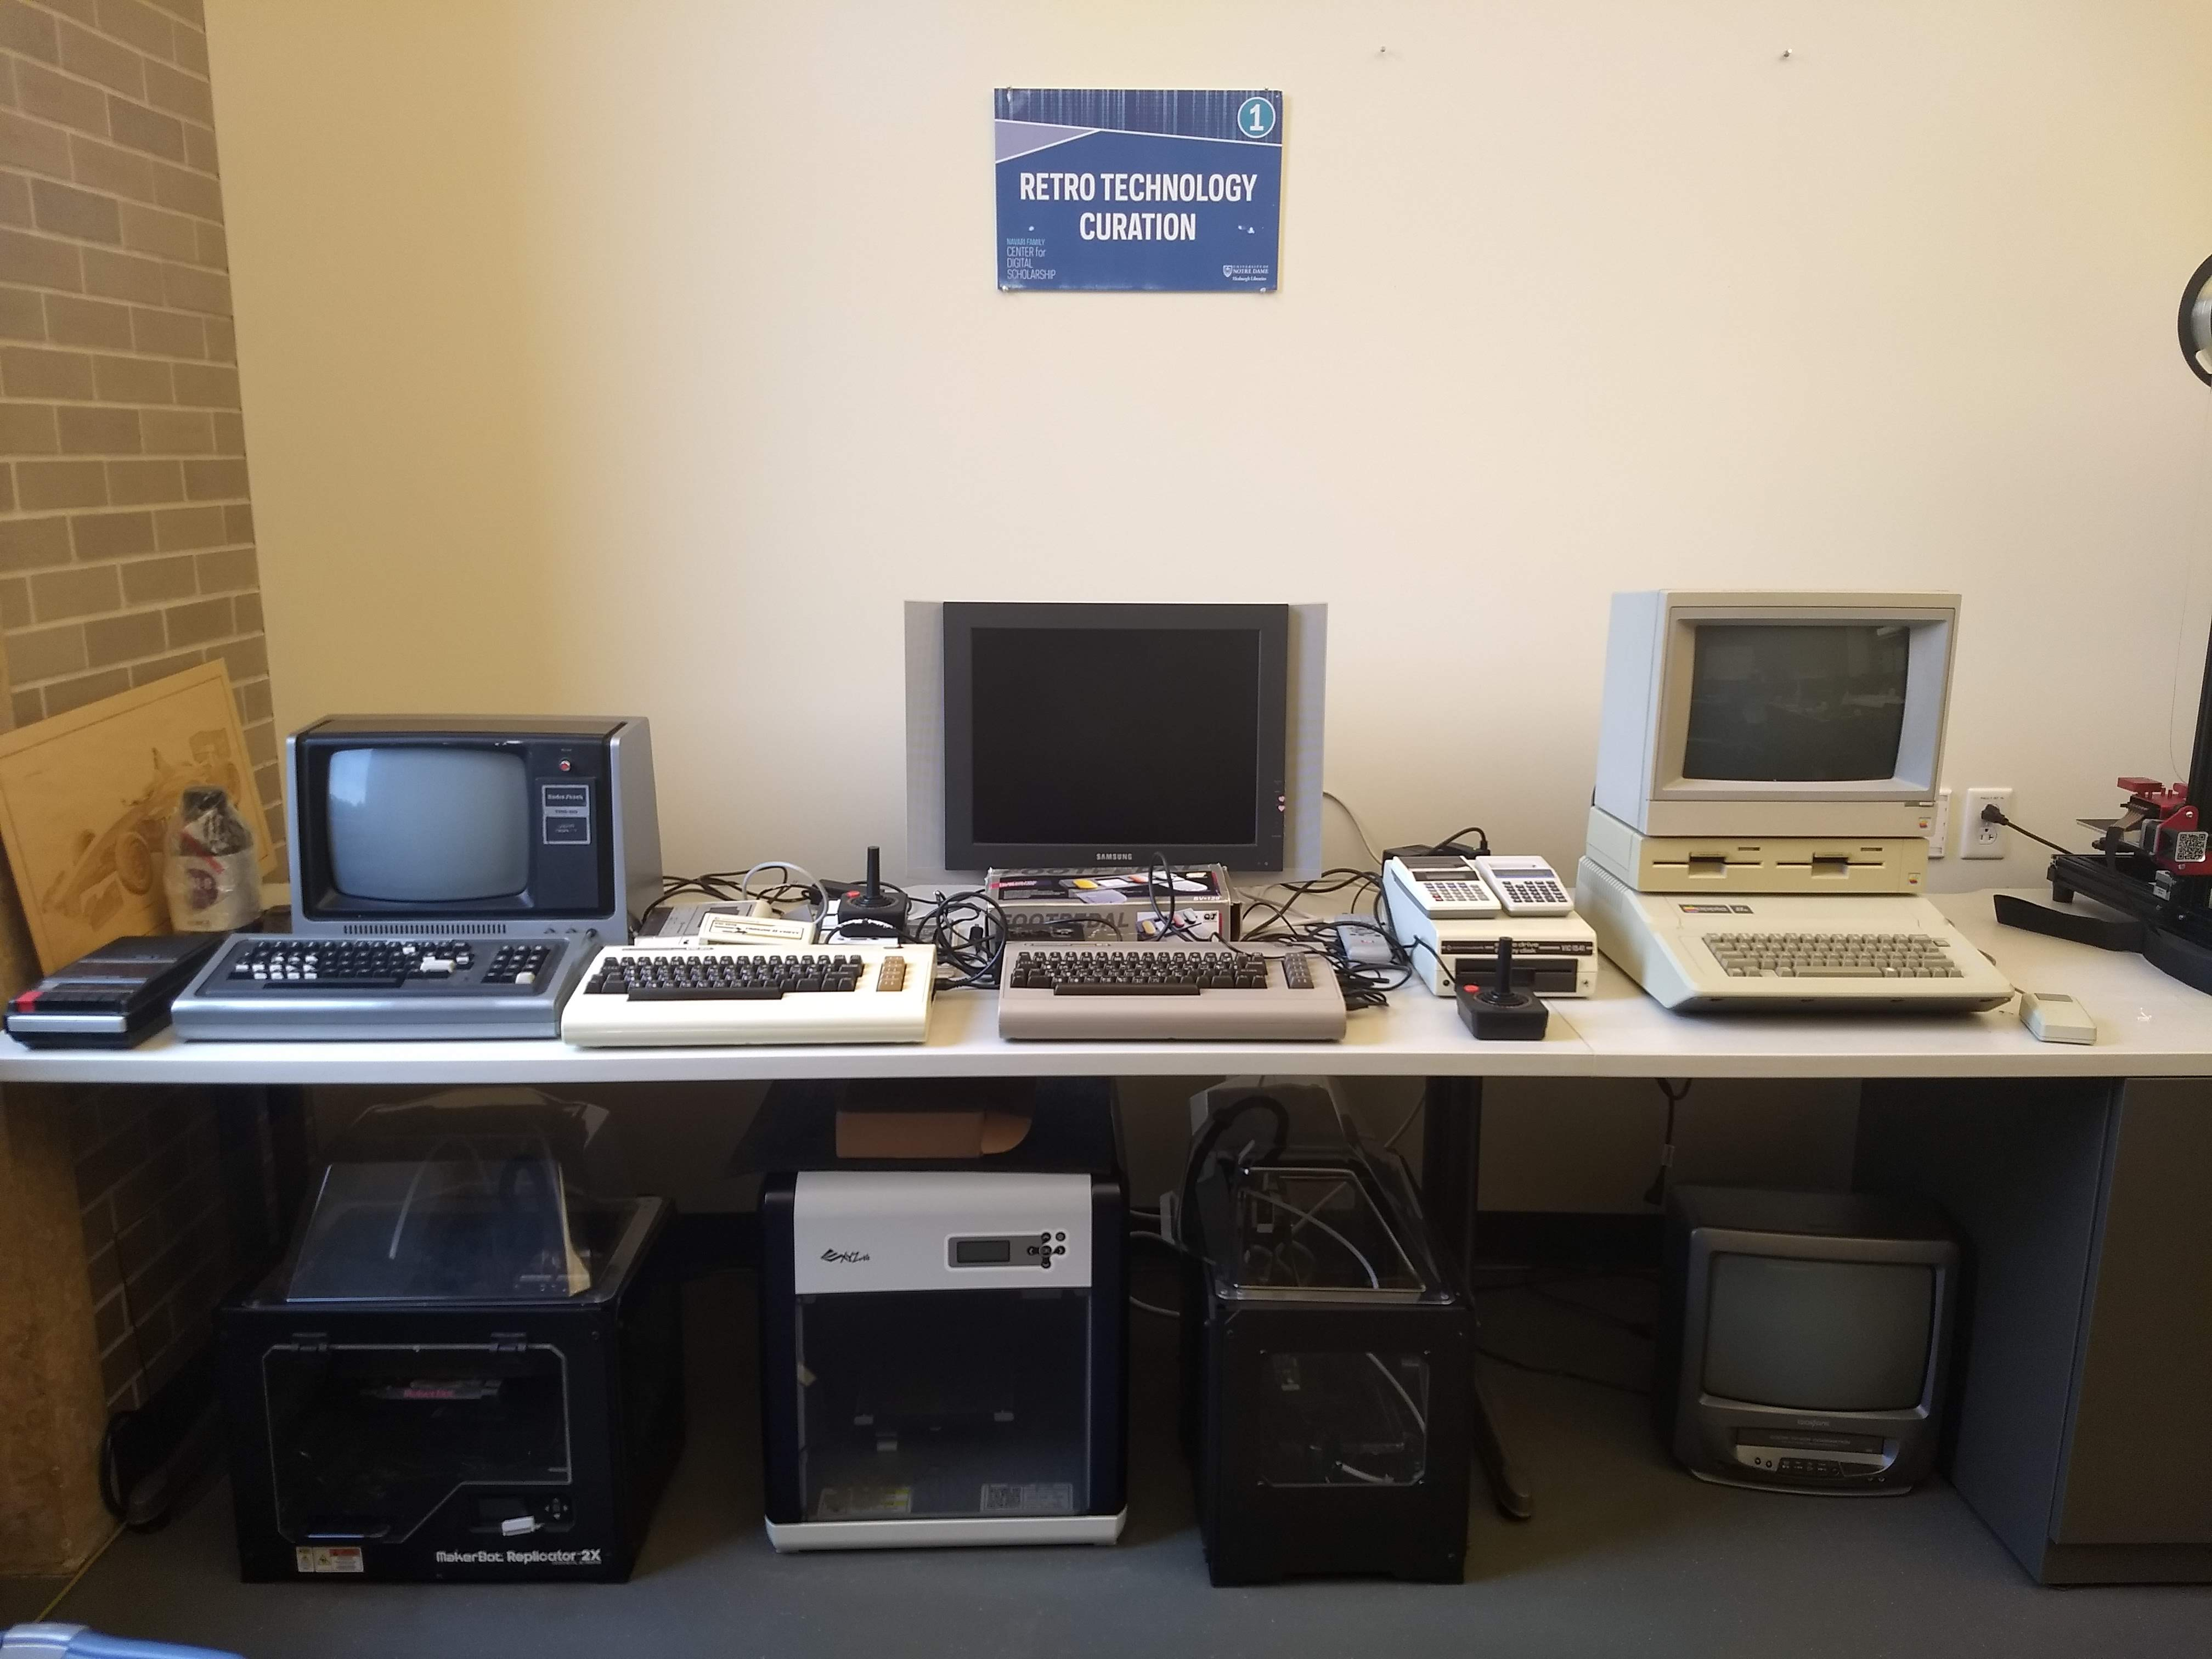 a row of old computer systems on a table